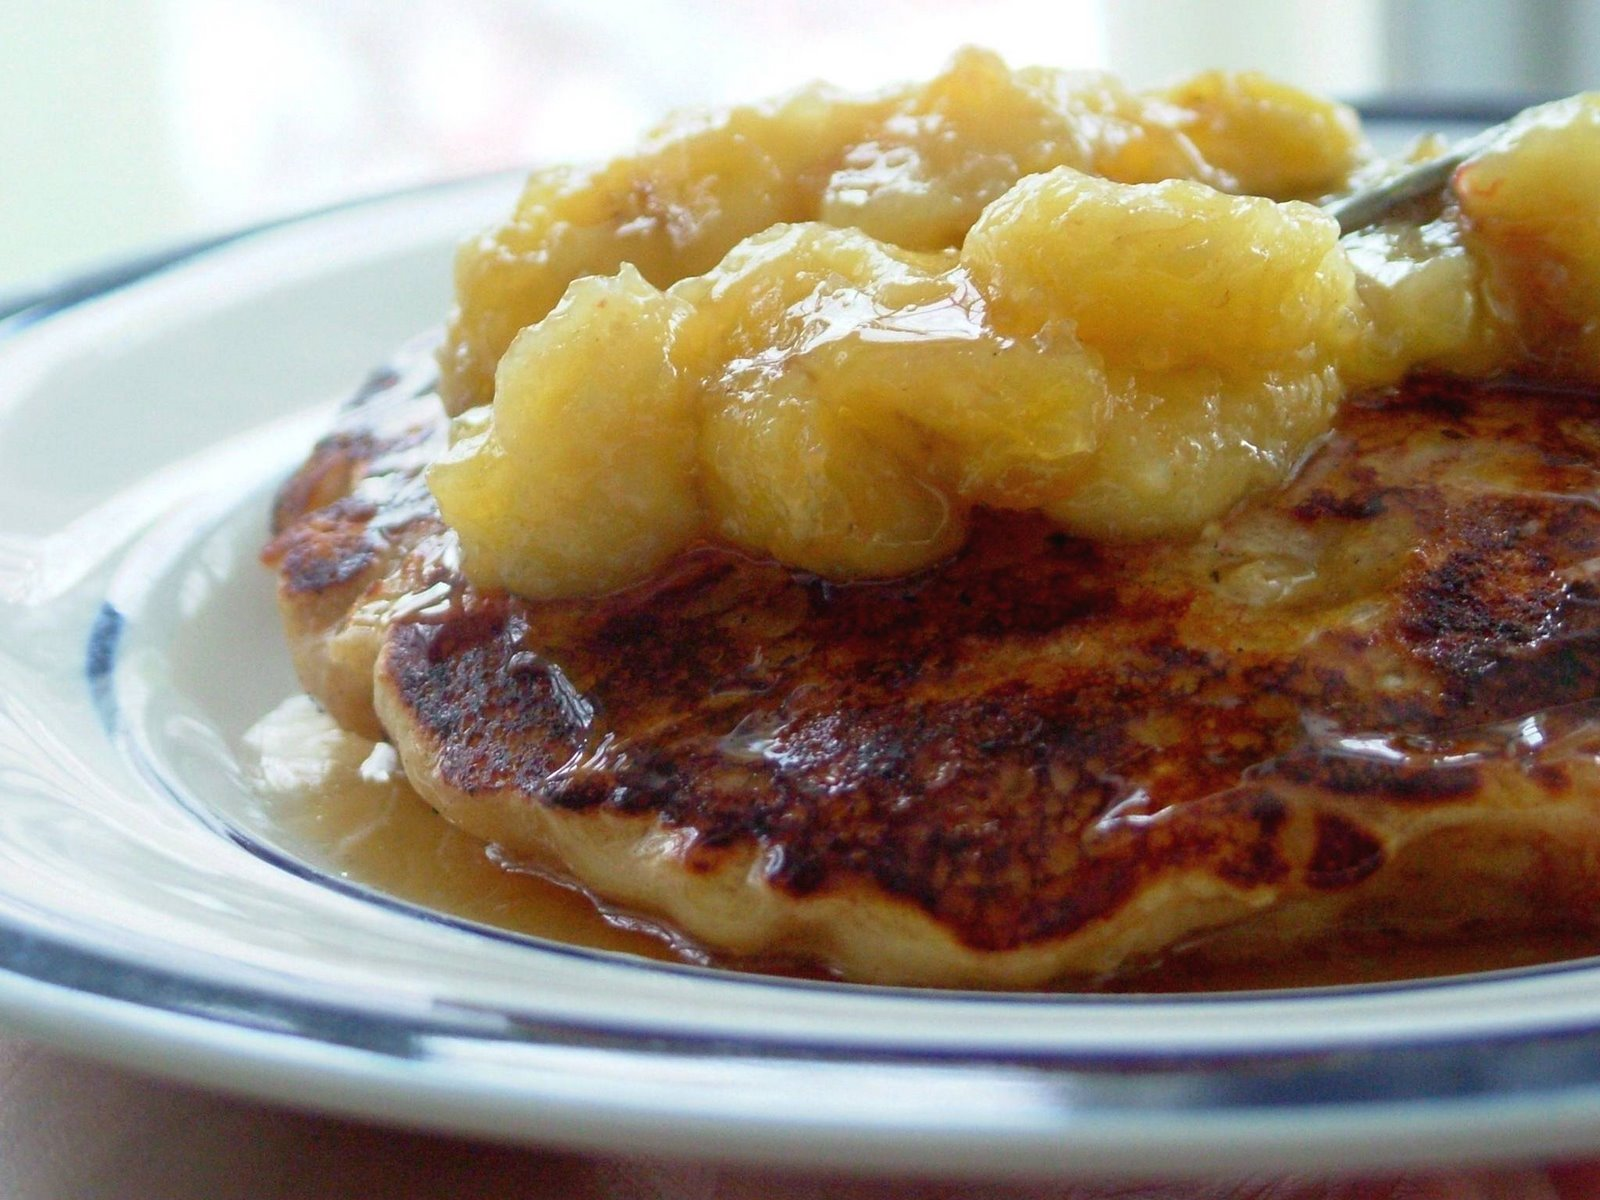 Bread+pudding+pancakes